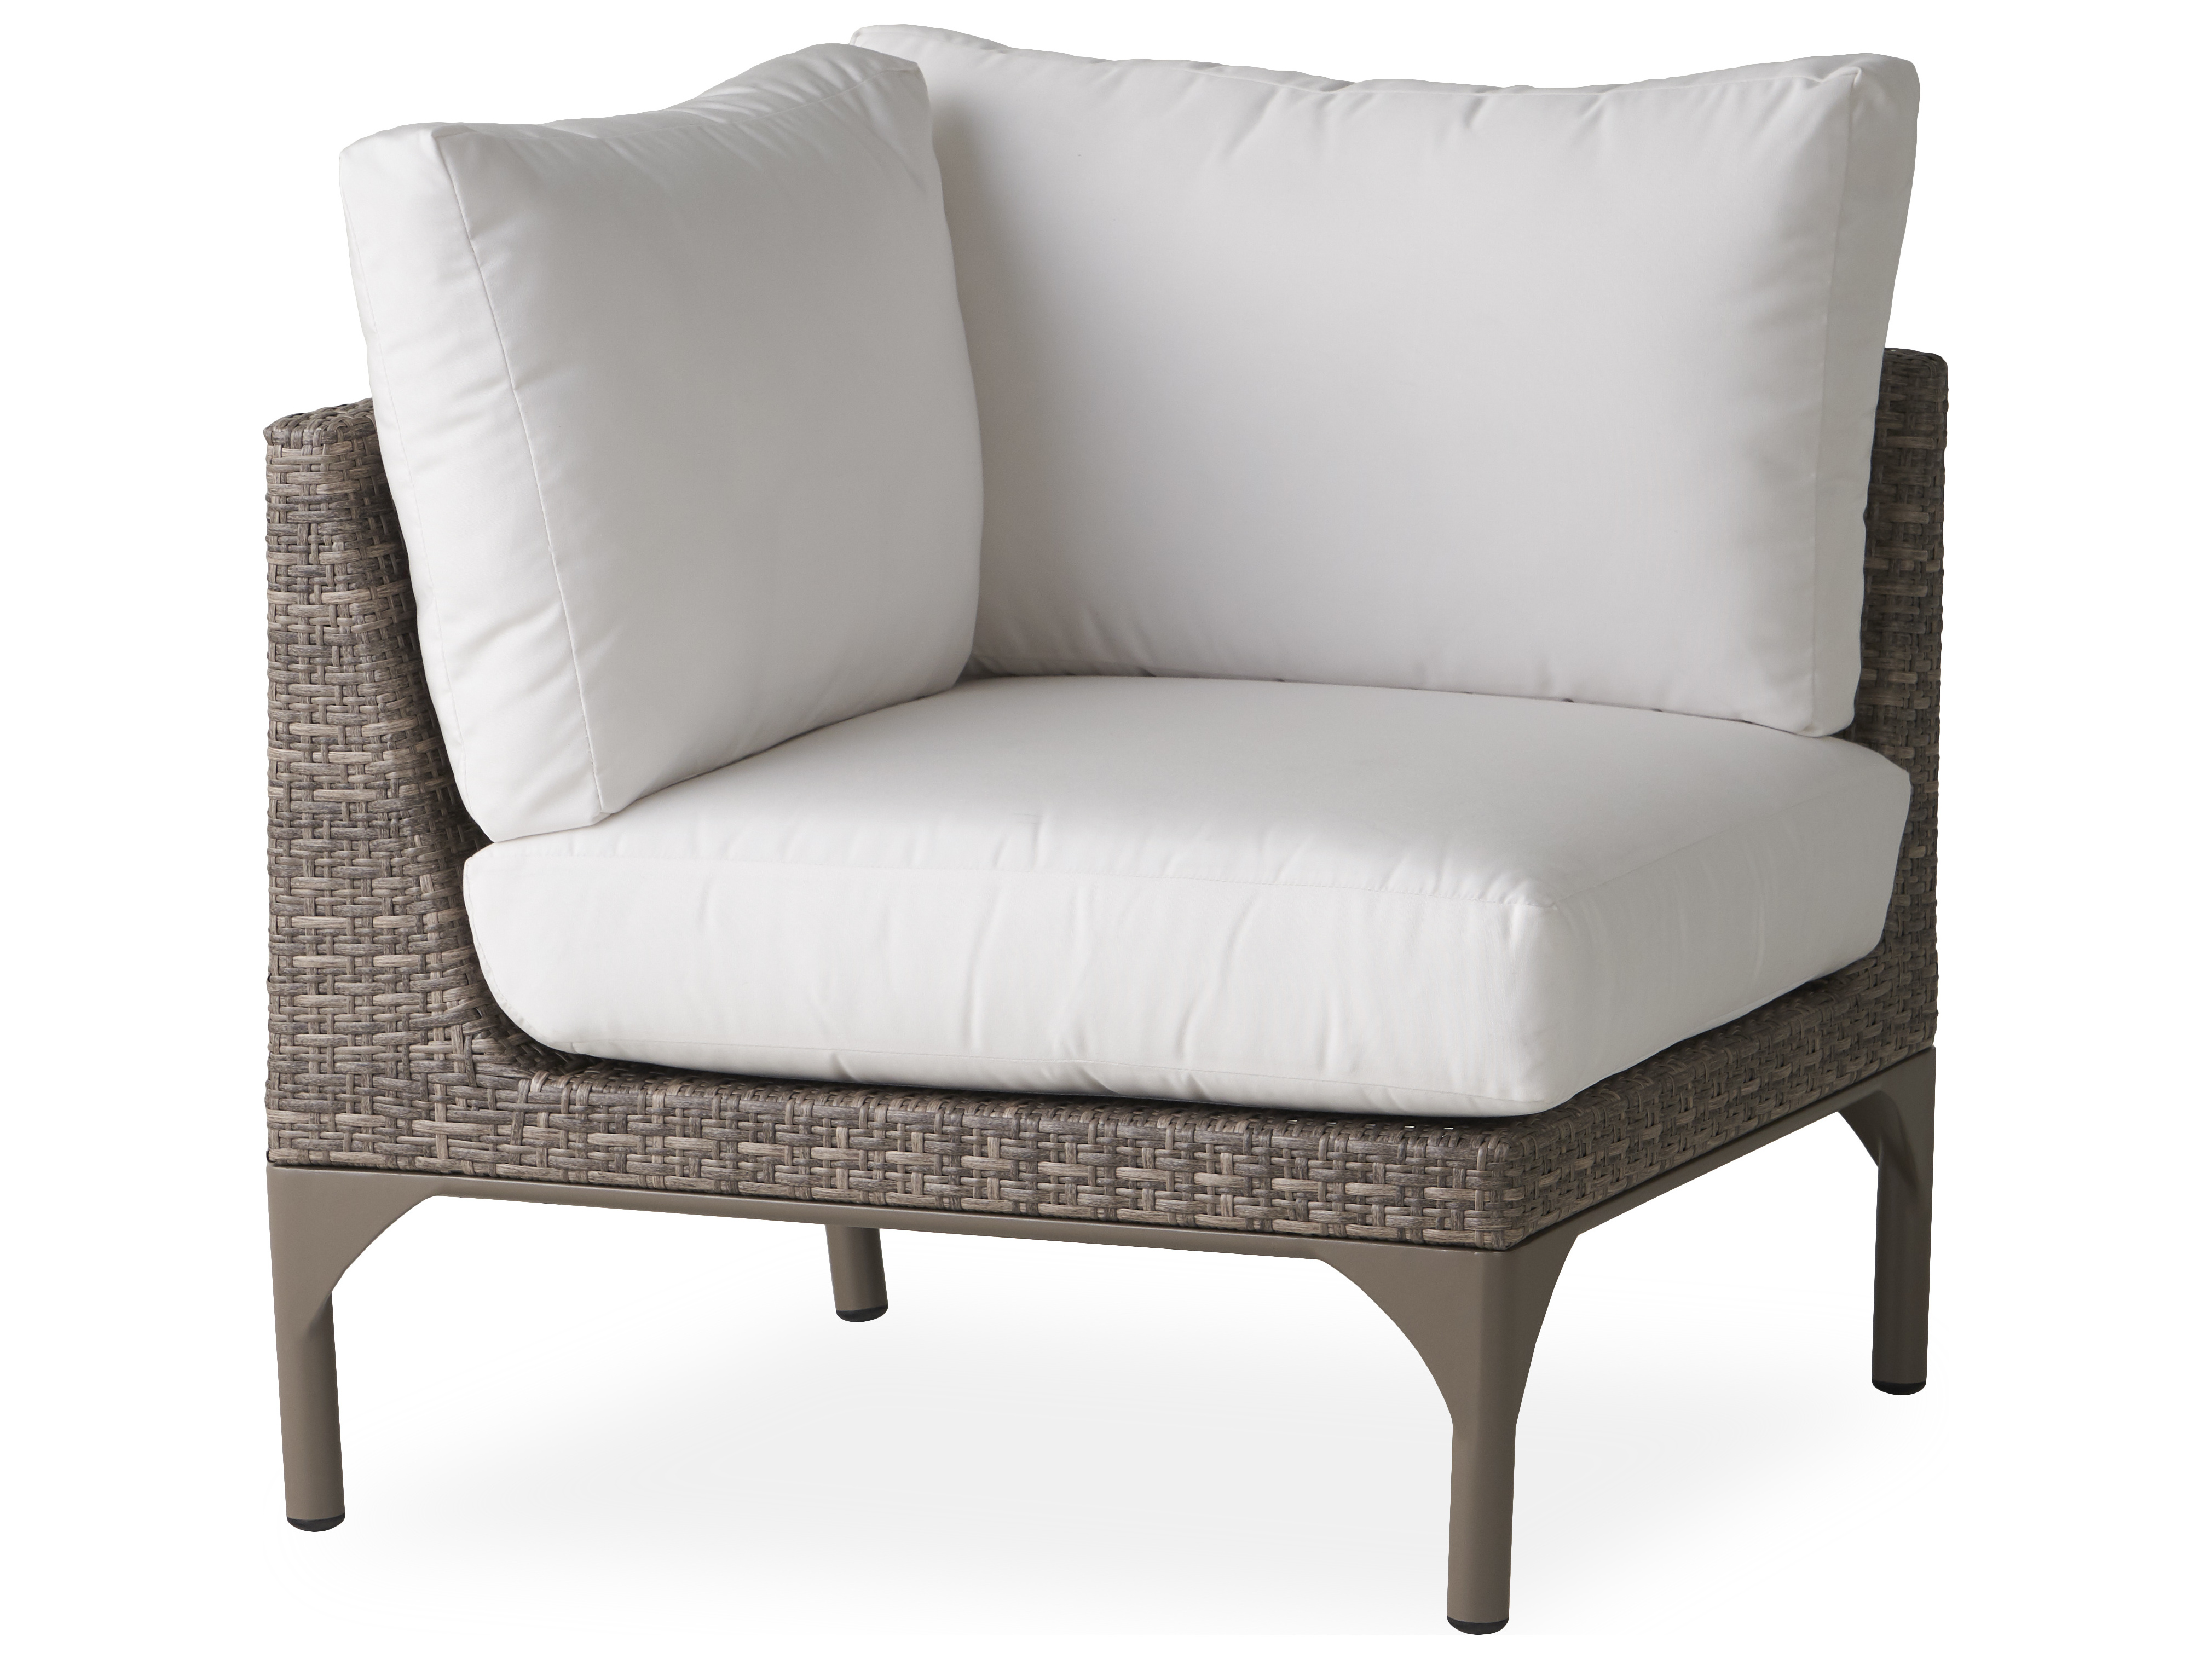 Corner Lounge Chair Hover To Zoom